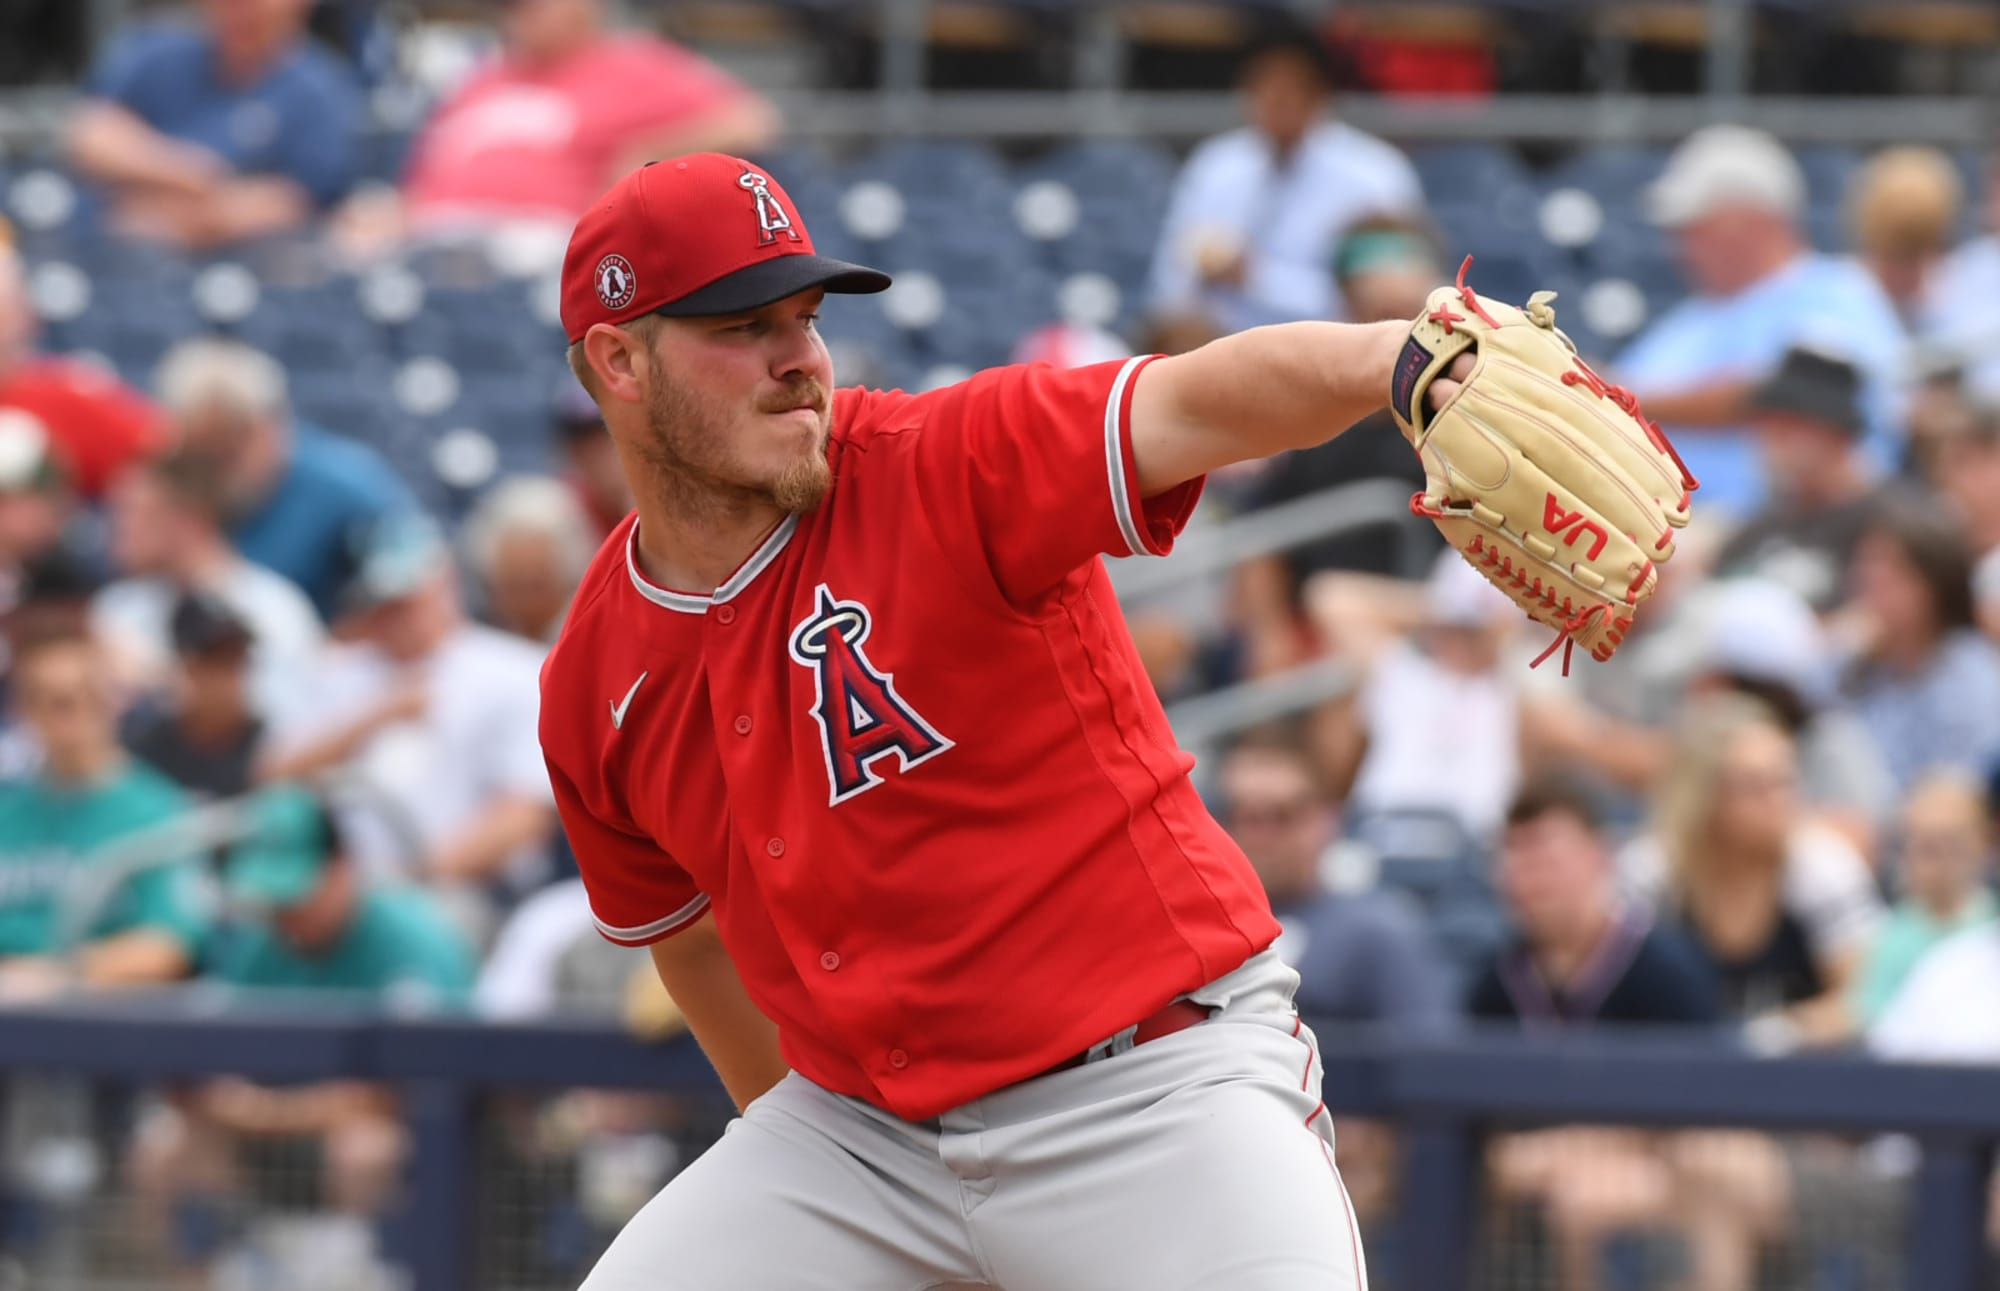 Dylan Bundy may be on the move again as he blossomed into the Angels' ace this season.